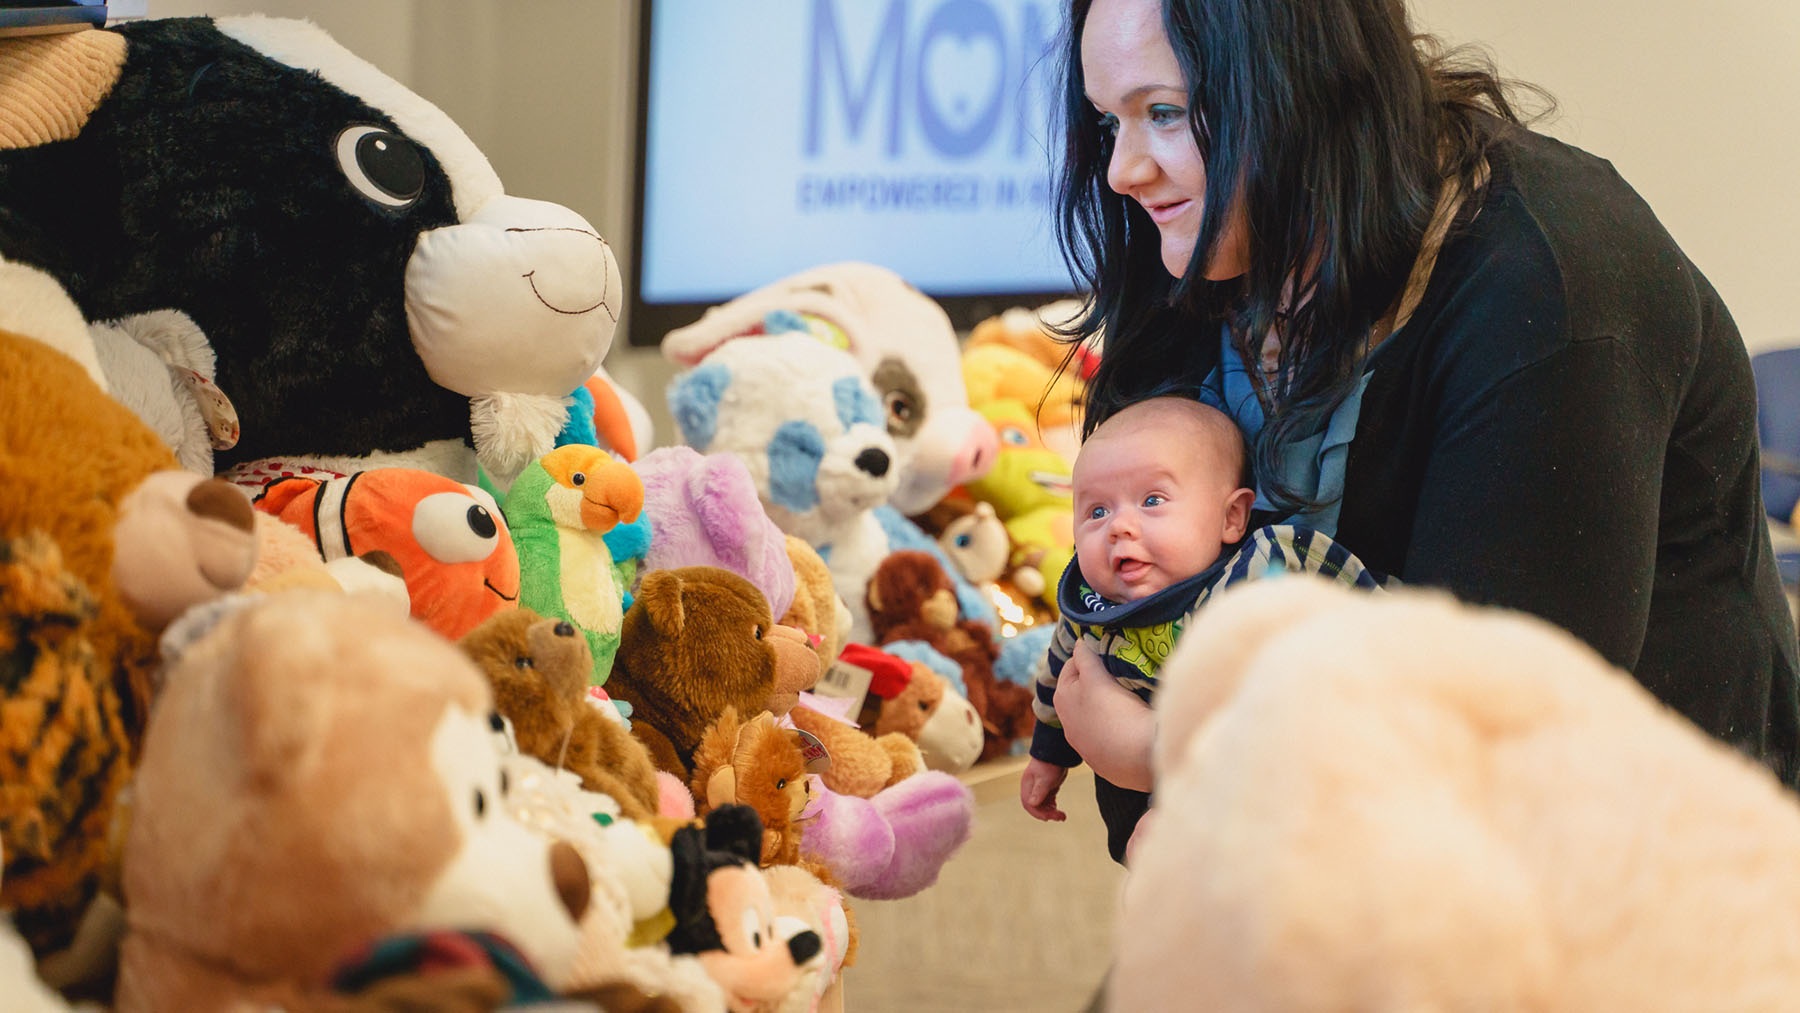 A new mom and her baby attend an event at the Wright Center for Community Health. The health center's Healthy MOMS program supports women addressing opioid dependency during pregnancy. (Photo courtesy of the Wright Center)